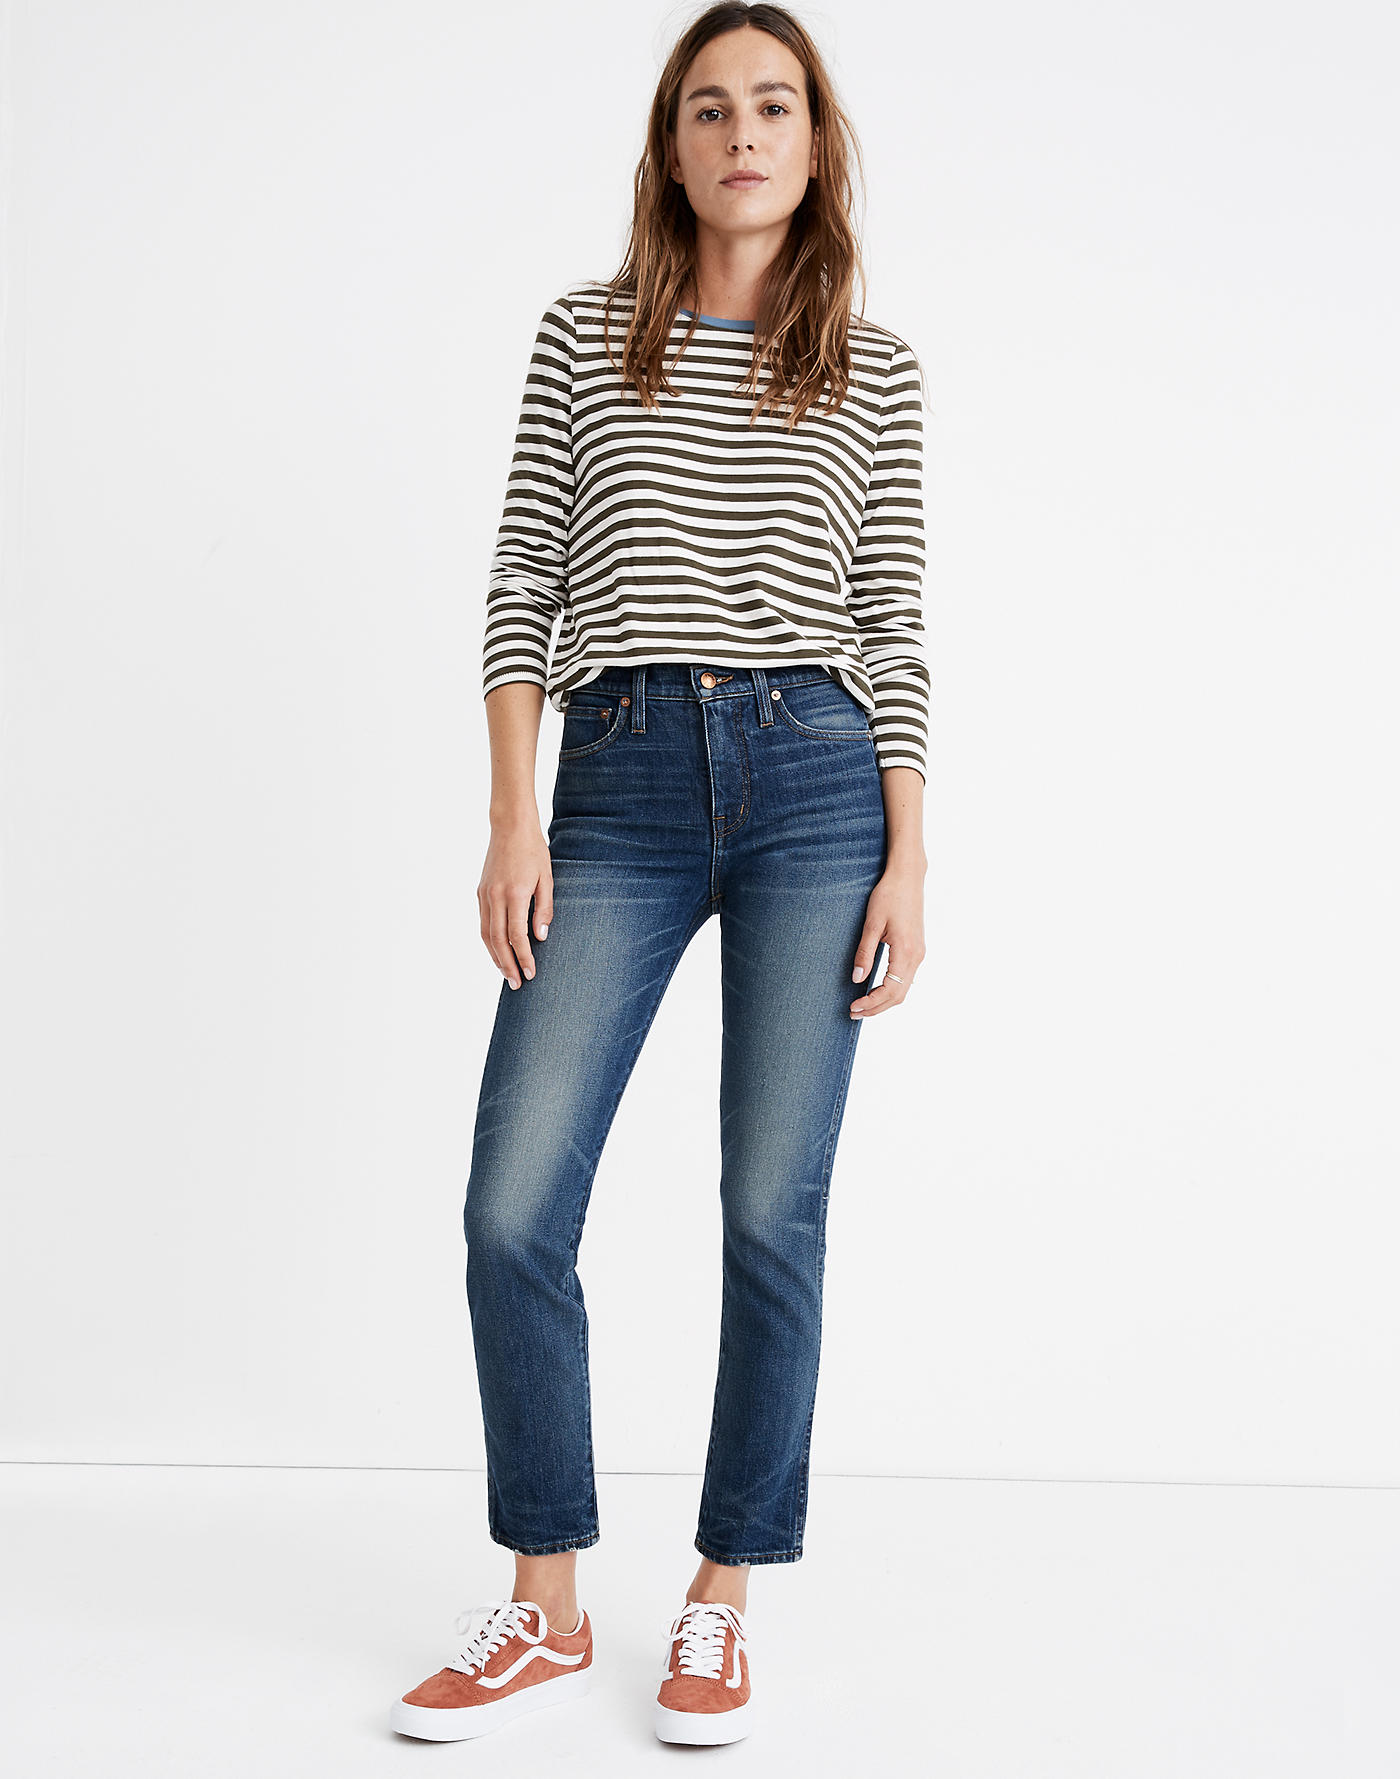 Rivet & Thread High-Rise Stovepipe Jeans